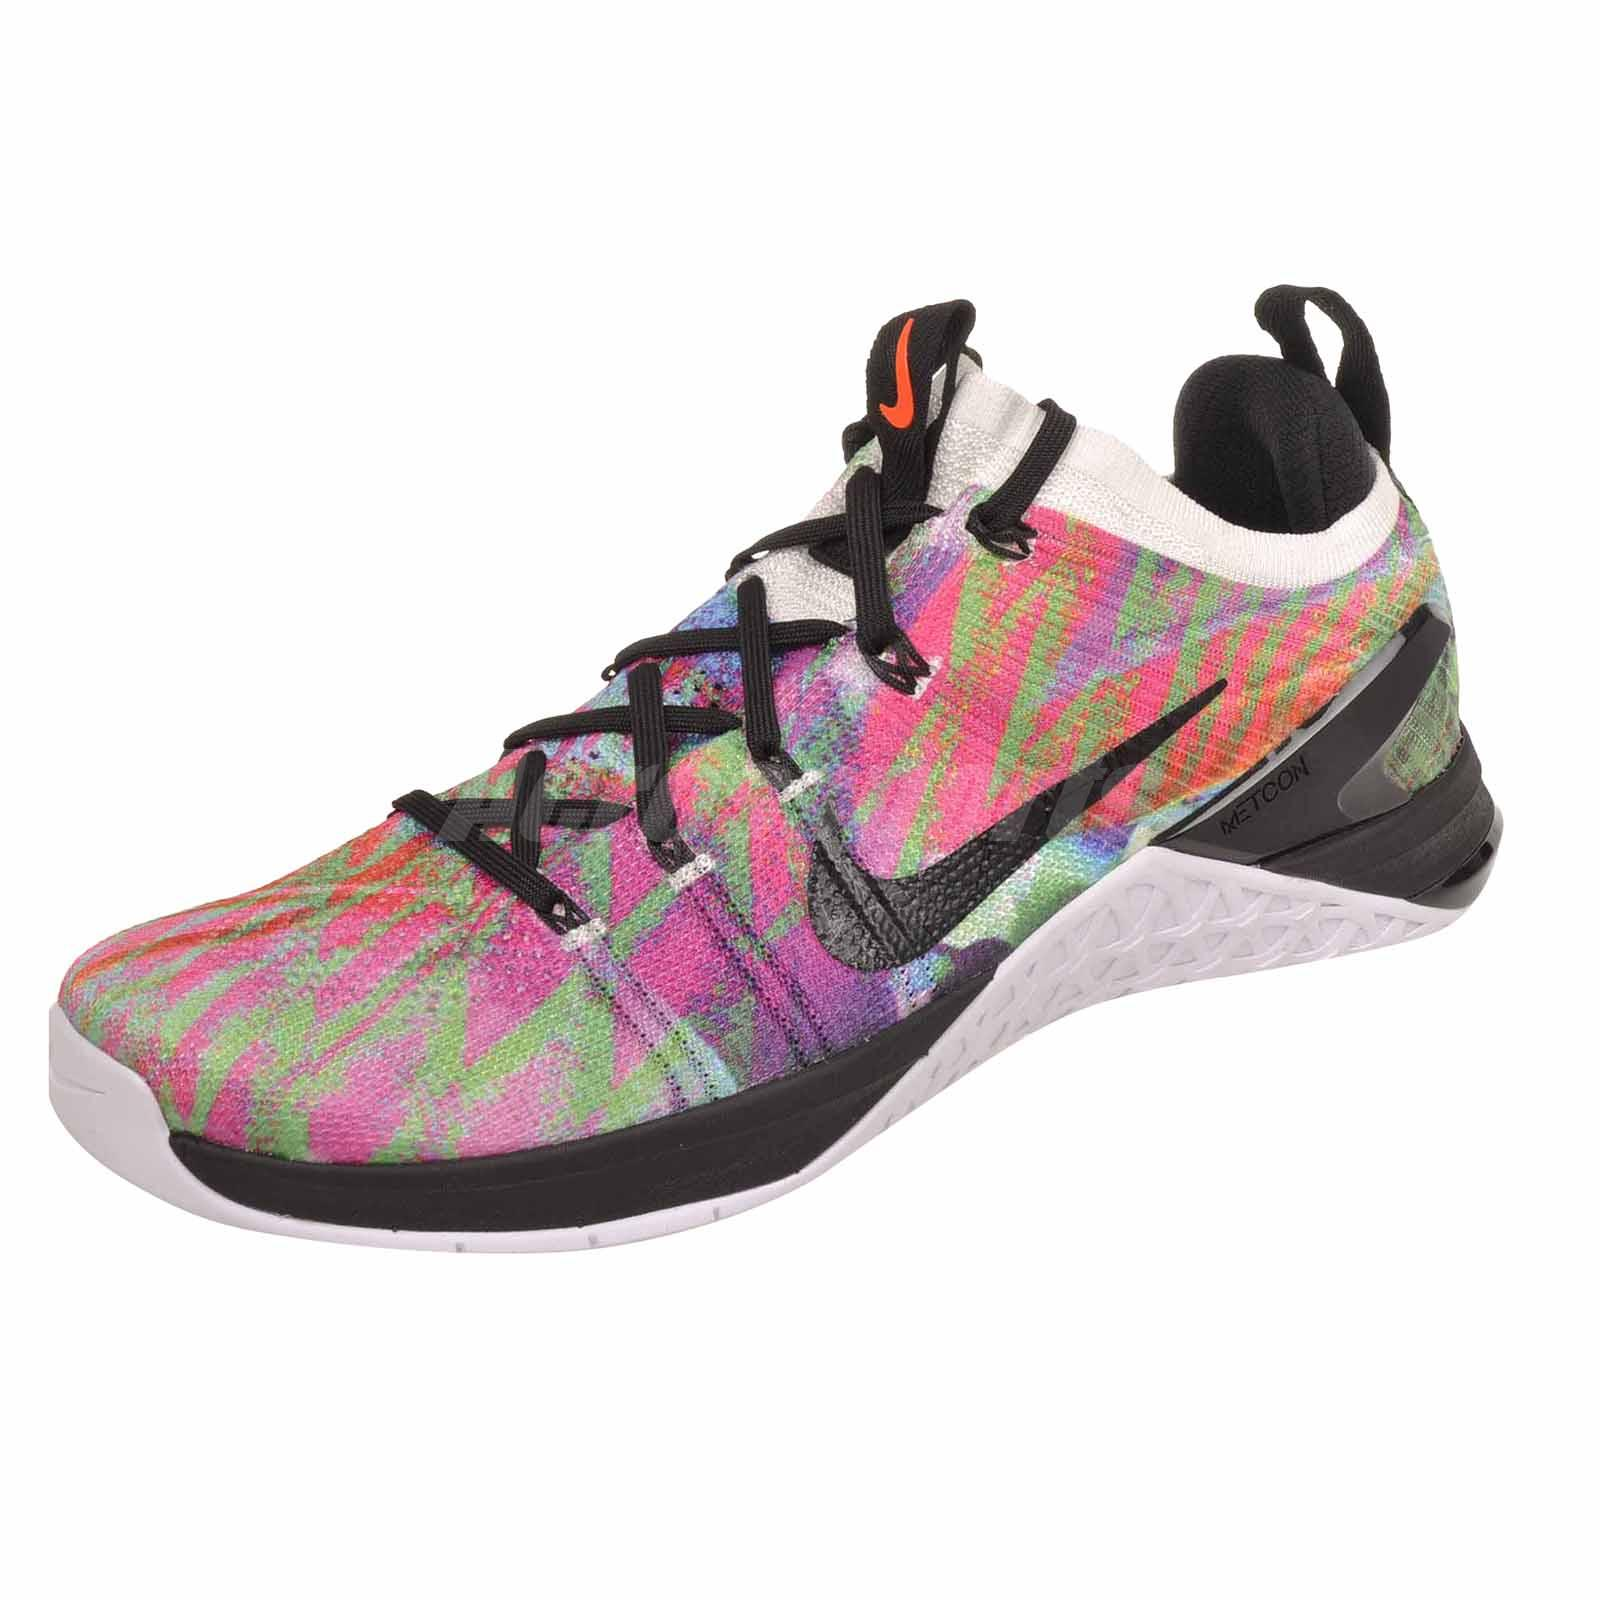 Details about Nike Metcon DSX Flyknit 2 WP WOD Paradise Rainbow Mens Shoes AH7843 180